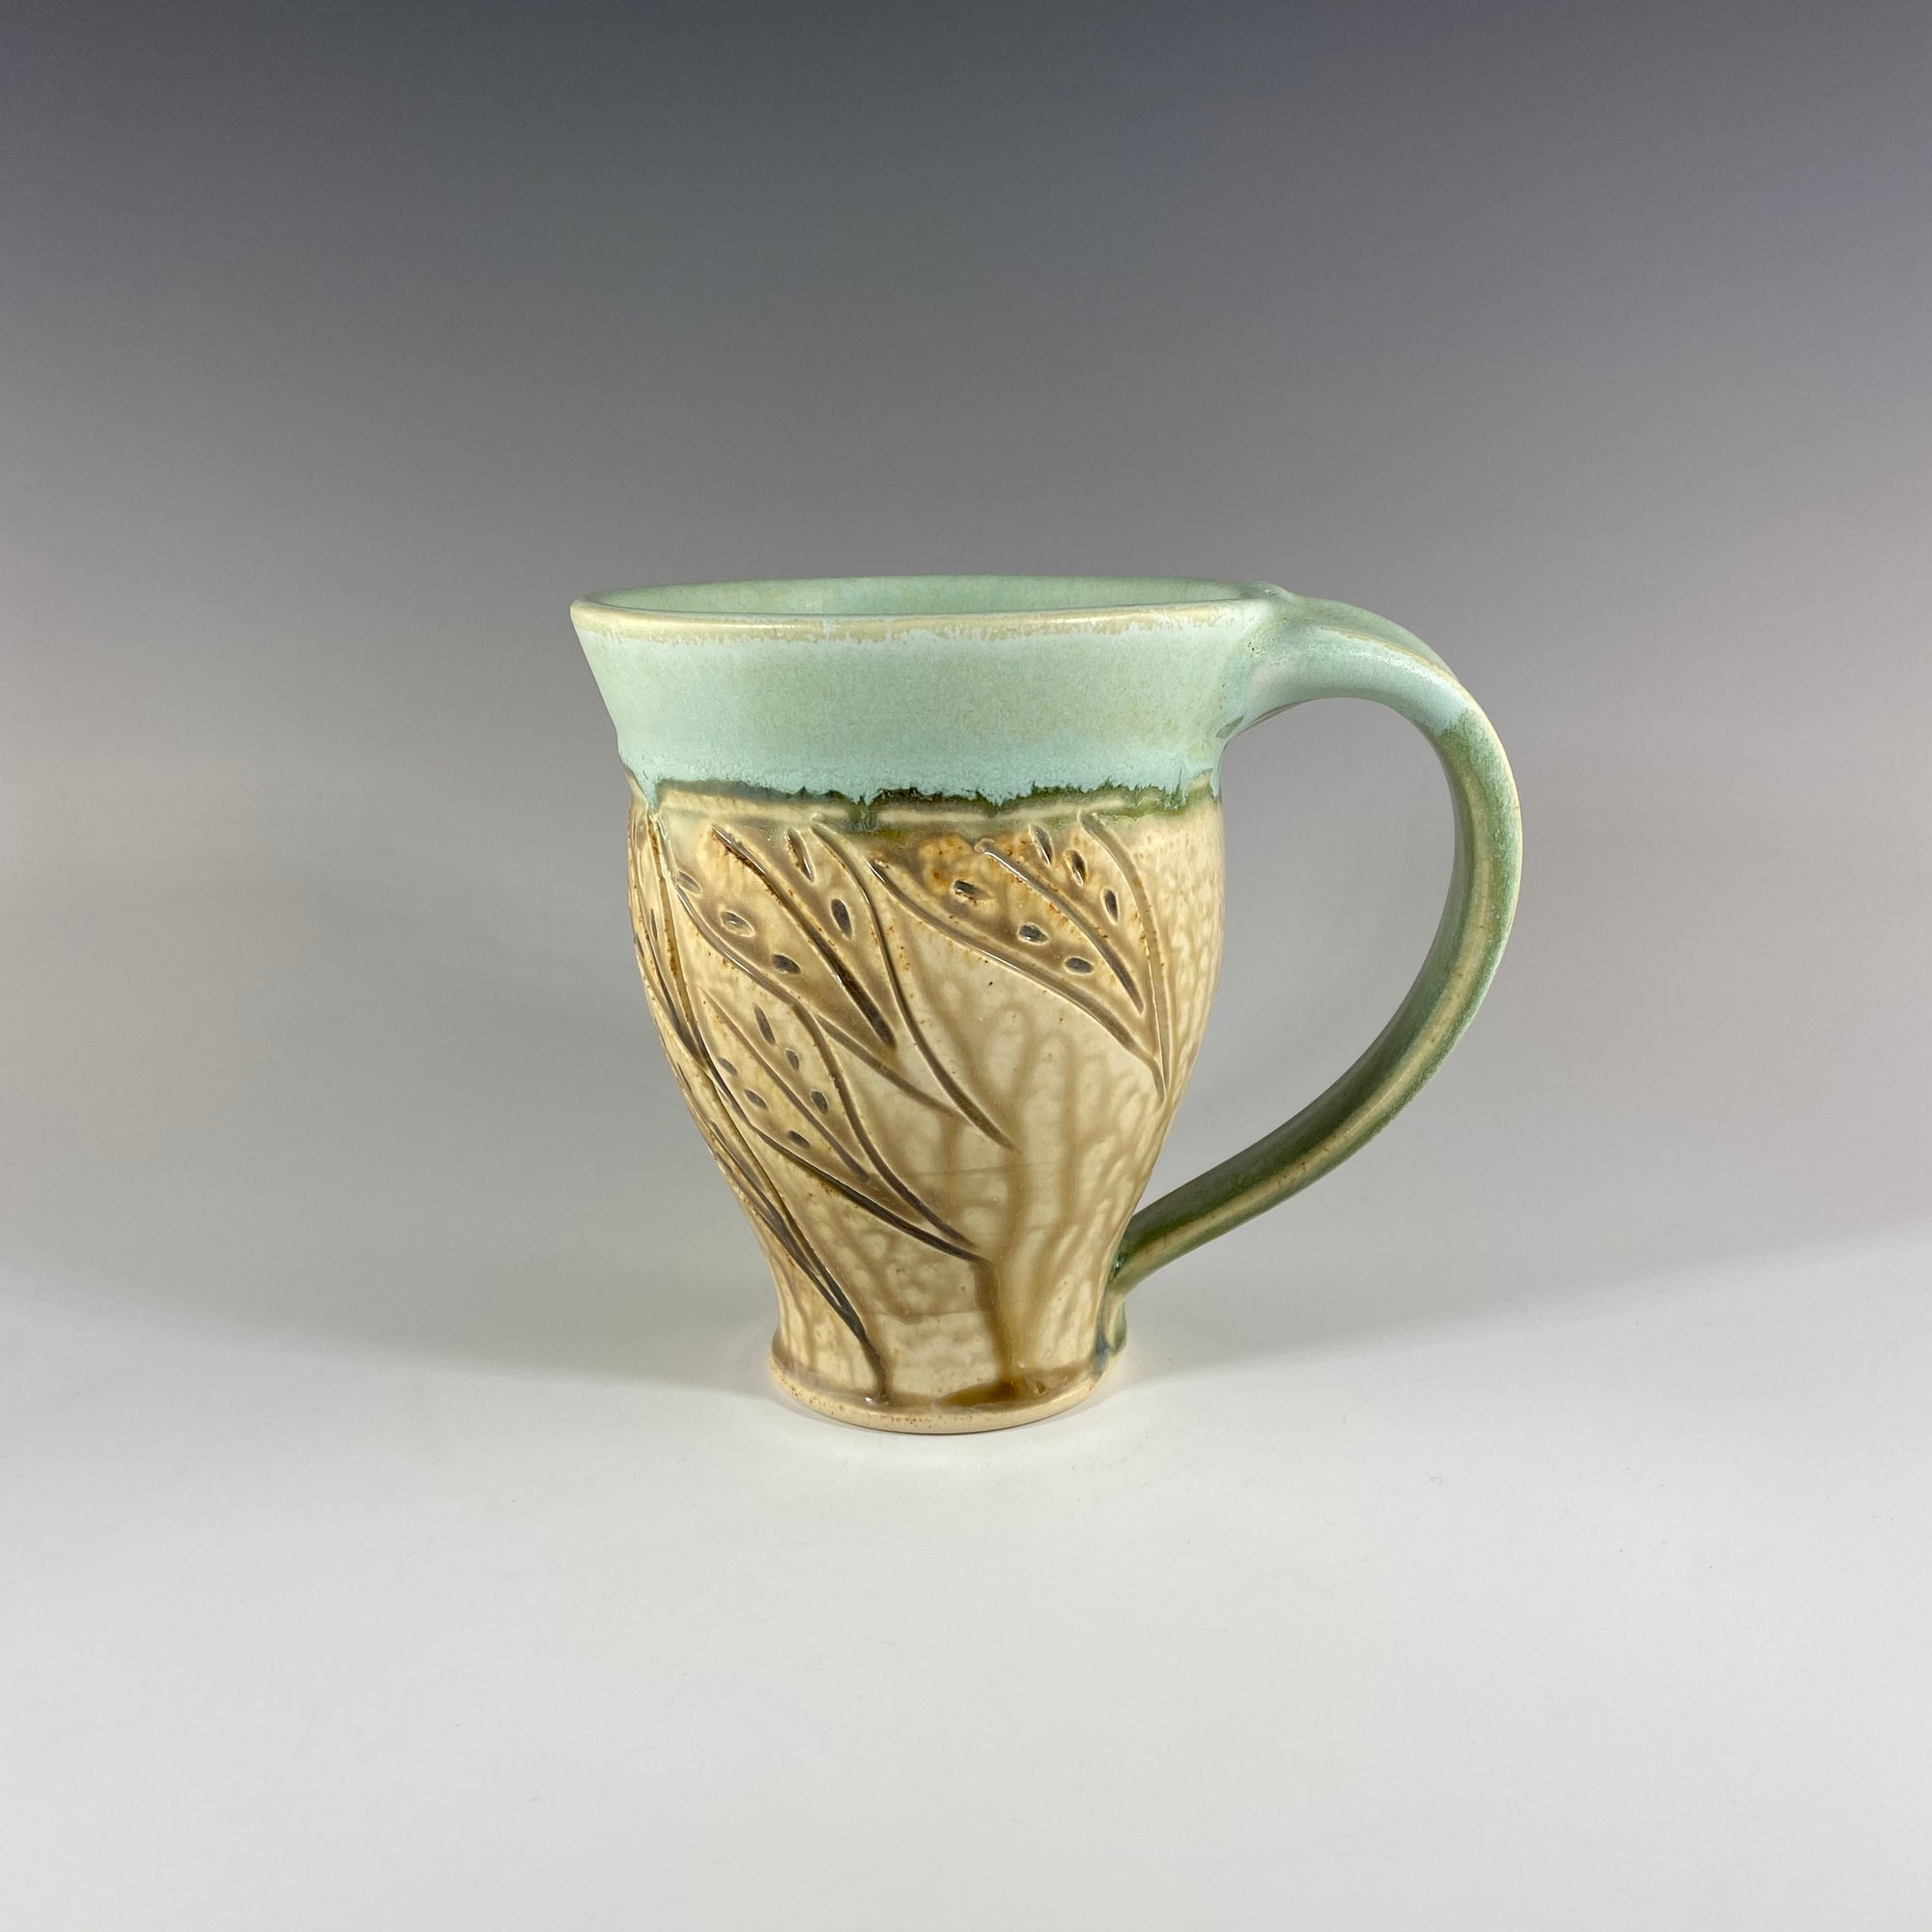 Carved Mug in Light Green and Tan with Leaves - Heart of the Home PA